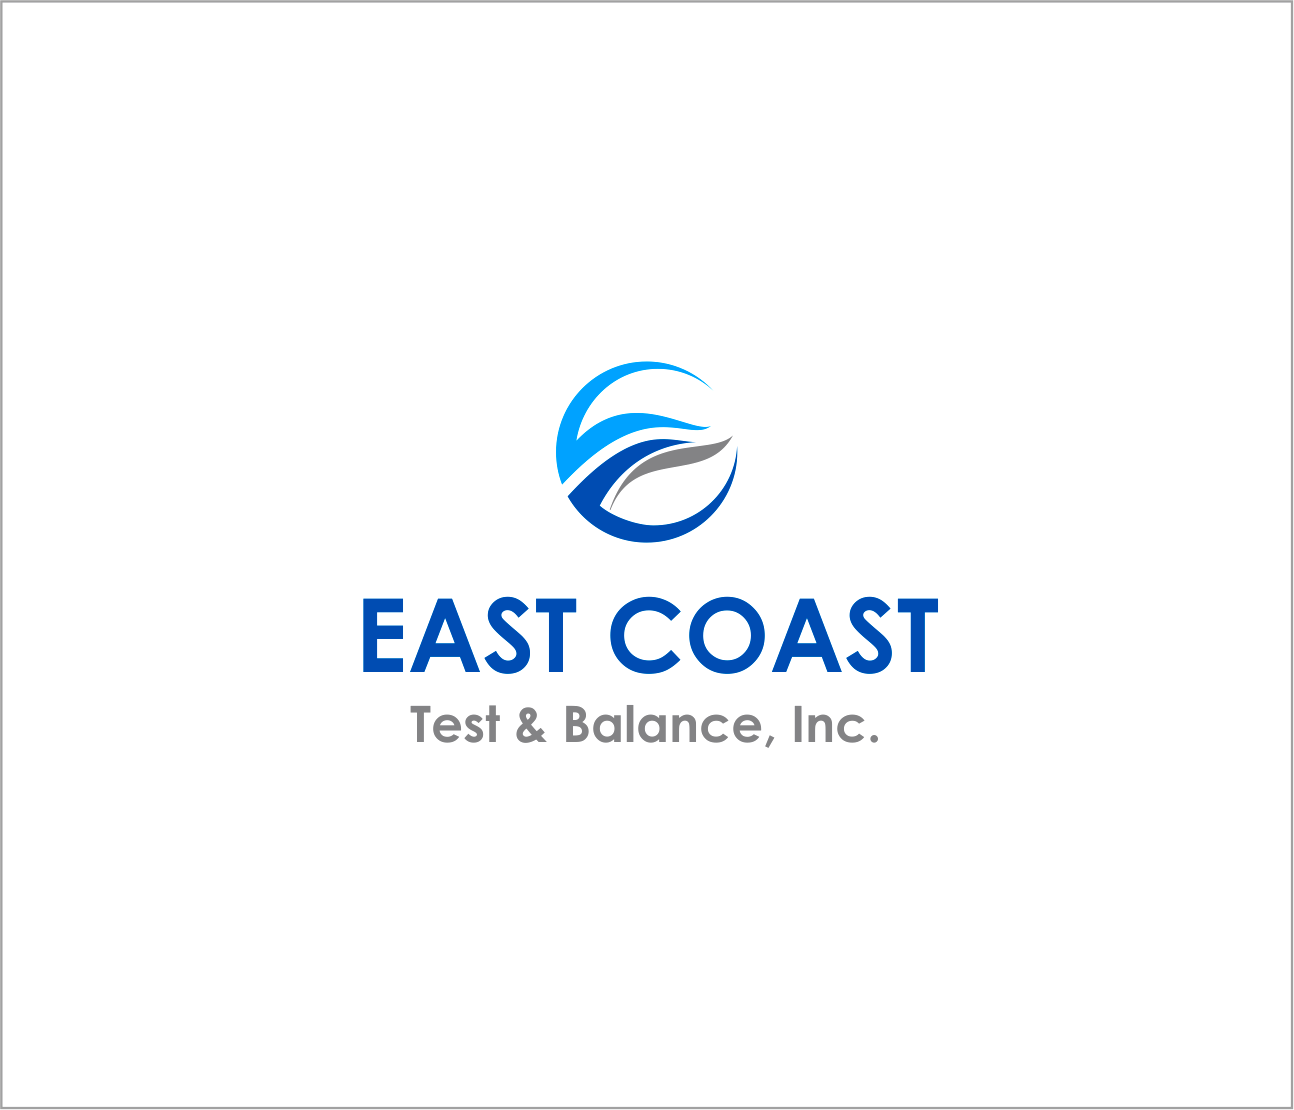 Logo Design by Armada Jamaluddin - Entry No. 50 in the Logo Design Contest Logo Design for East Coast Test & Balance, Inc. (ECTB).